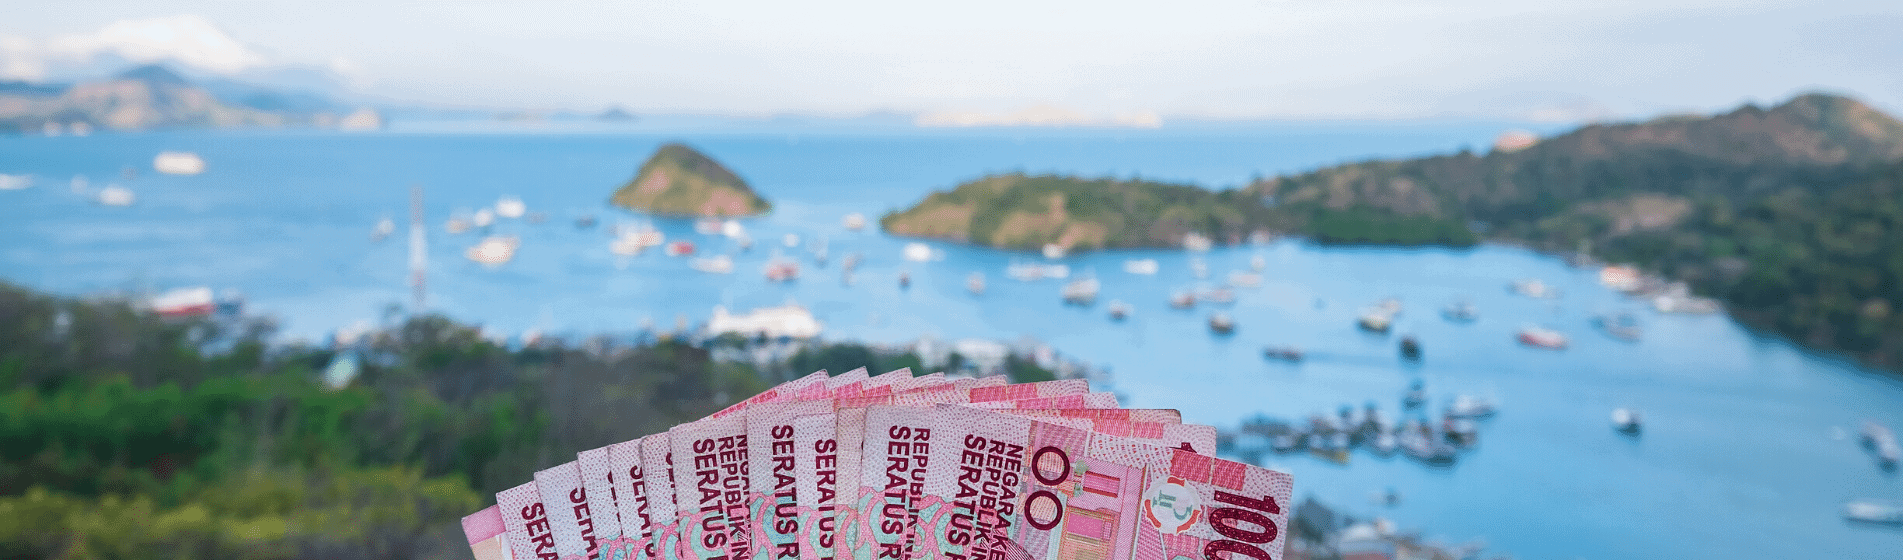 How to Hire the Best Expat Tax Service for Americans